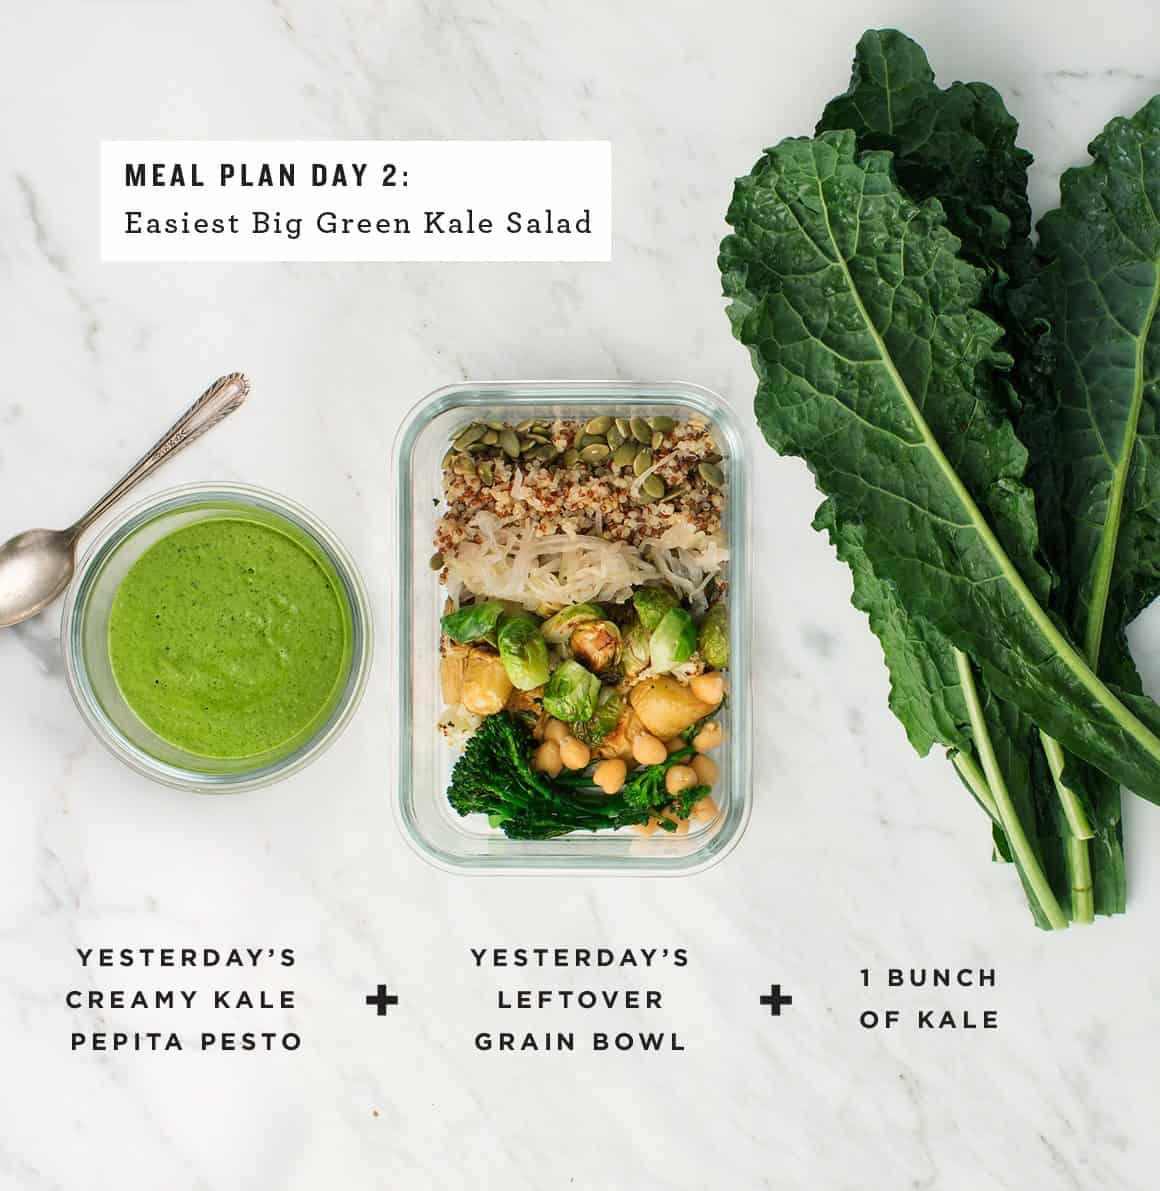 Big Green Kale Quinoa Salad with Creamy Kale Pepita Pesto